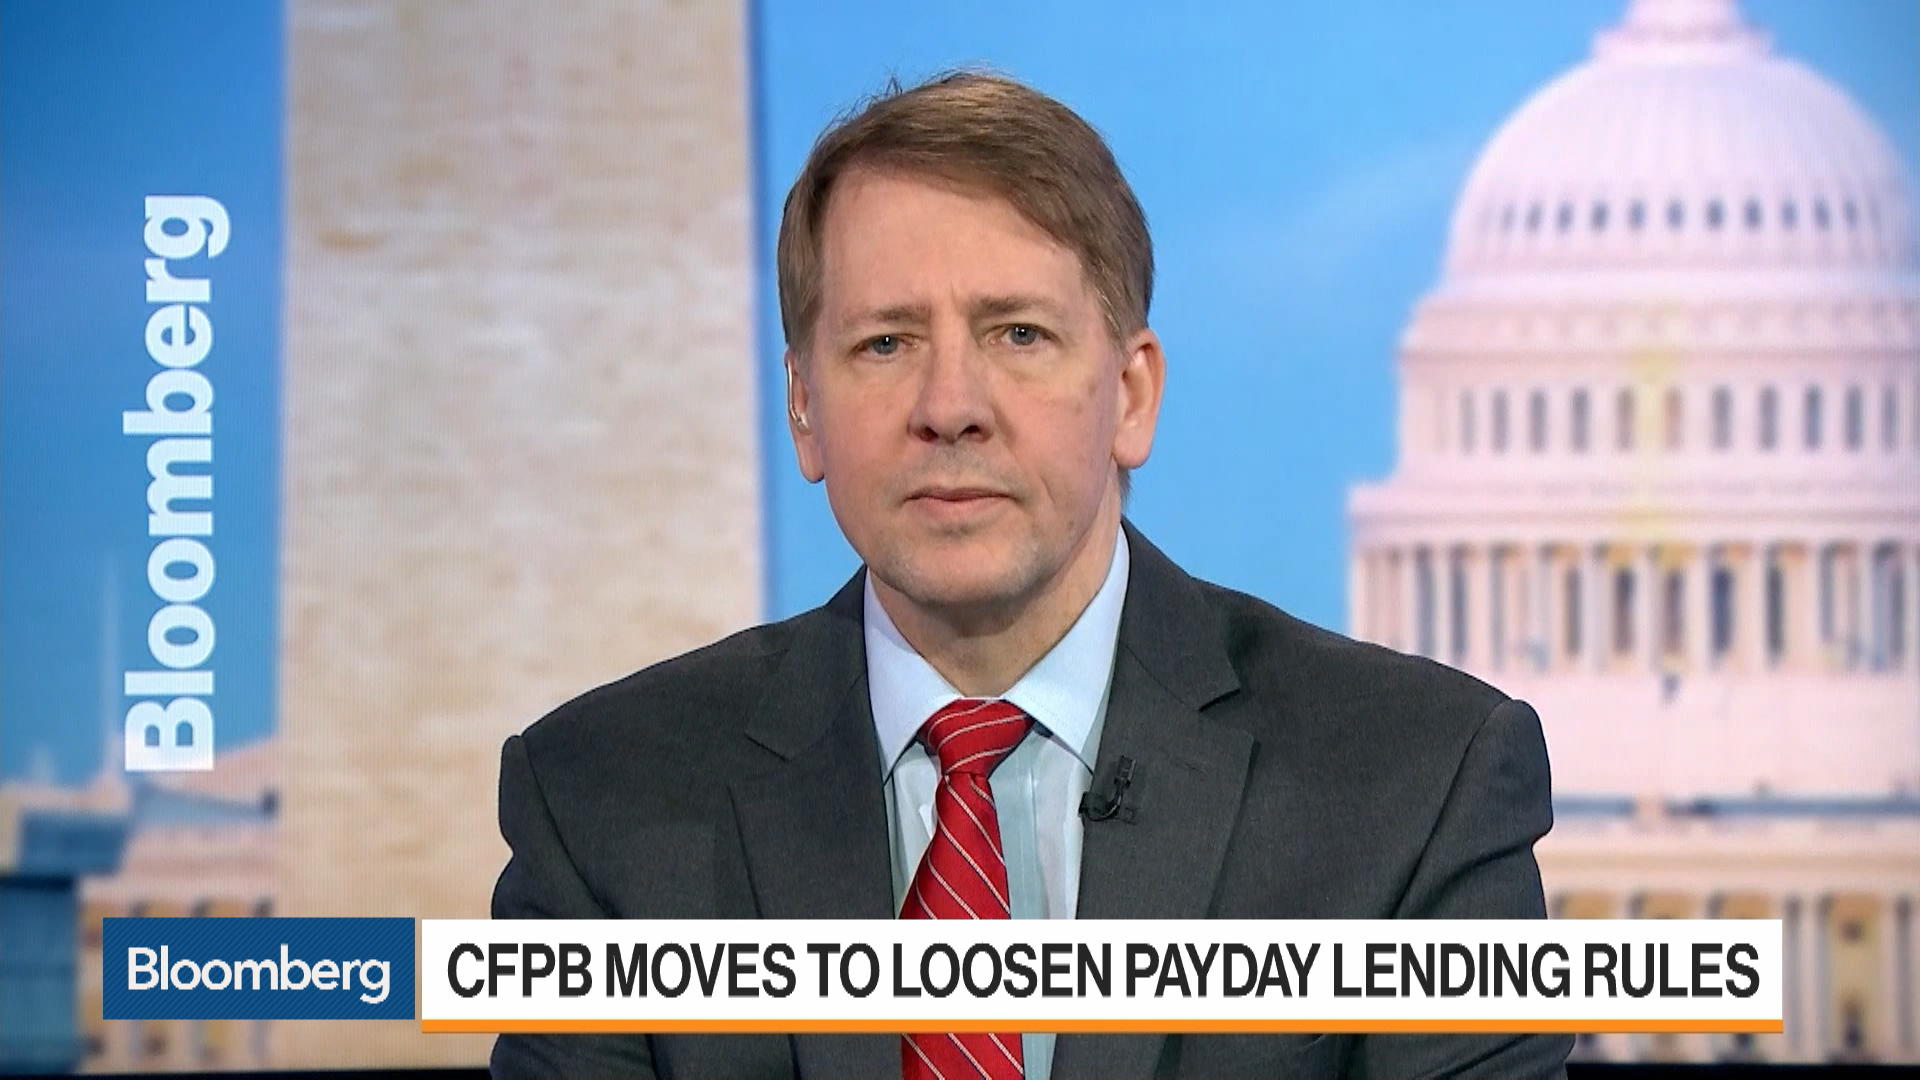 Former CFPB Director Cordray Weighs In on Loosening Payday Lending Rules